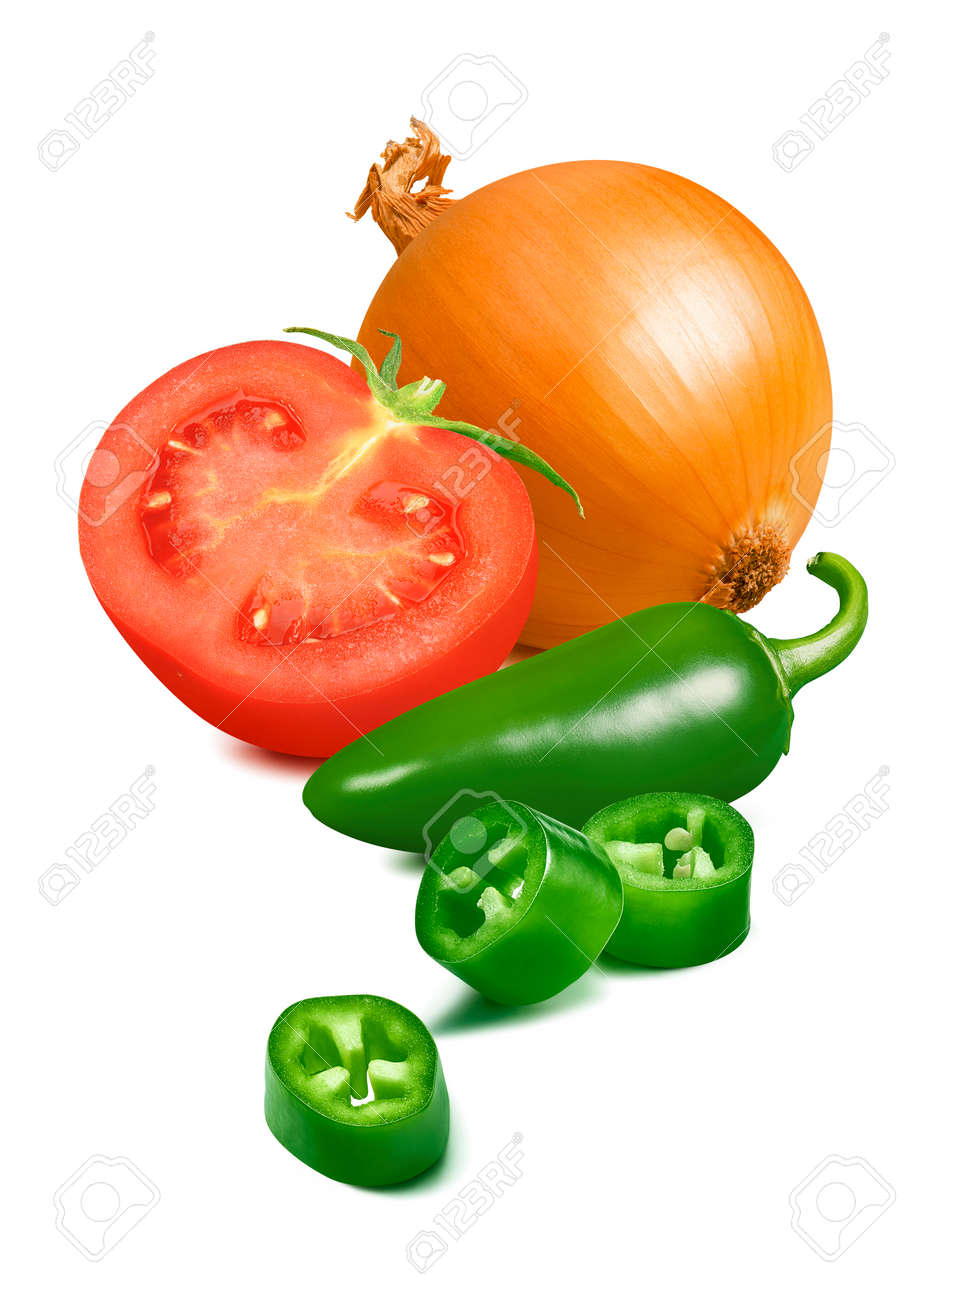 Onion, tomato and green hot pepper isolated on white - 168223481